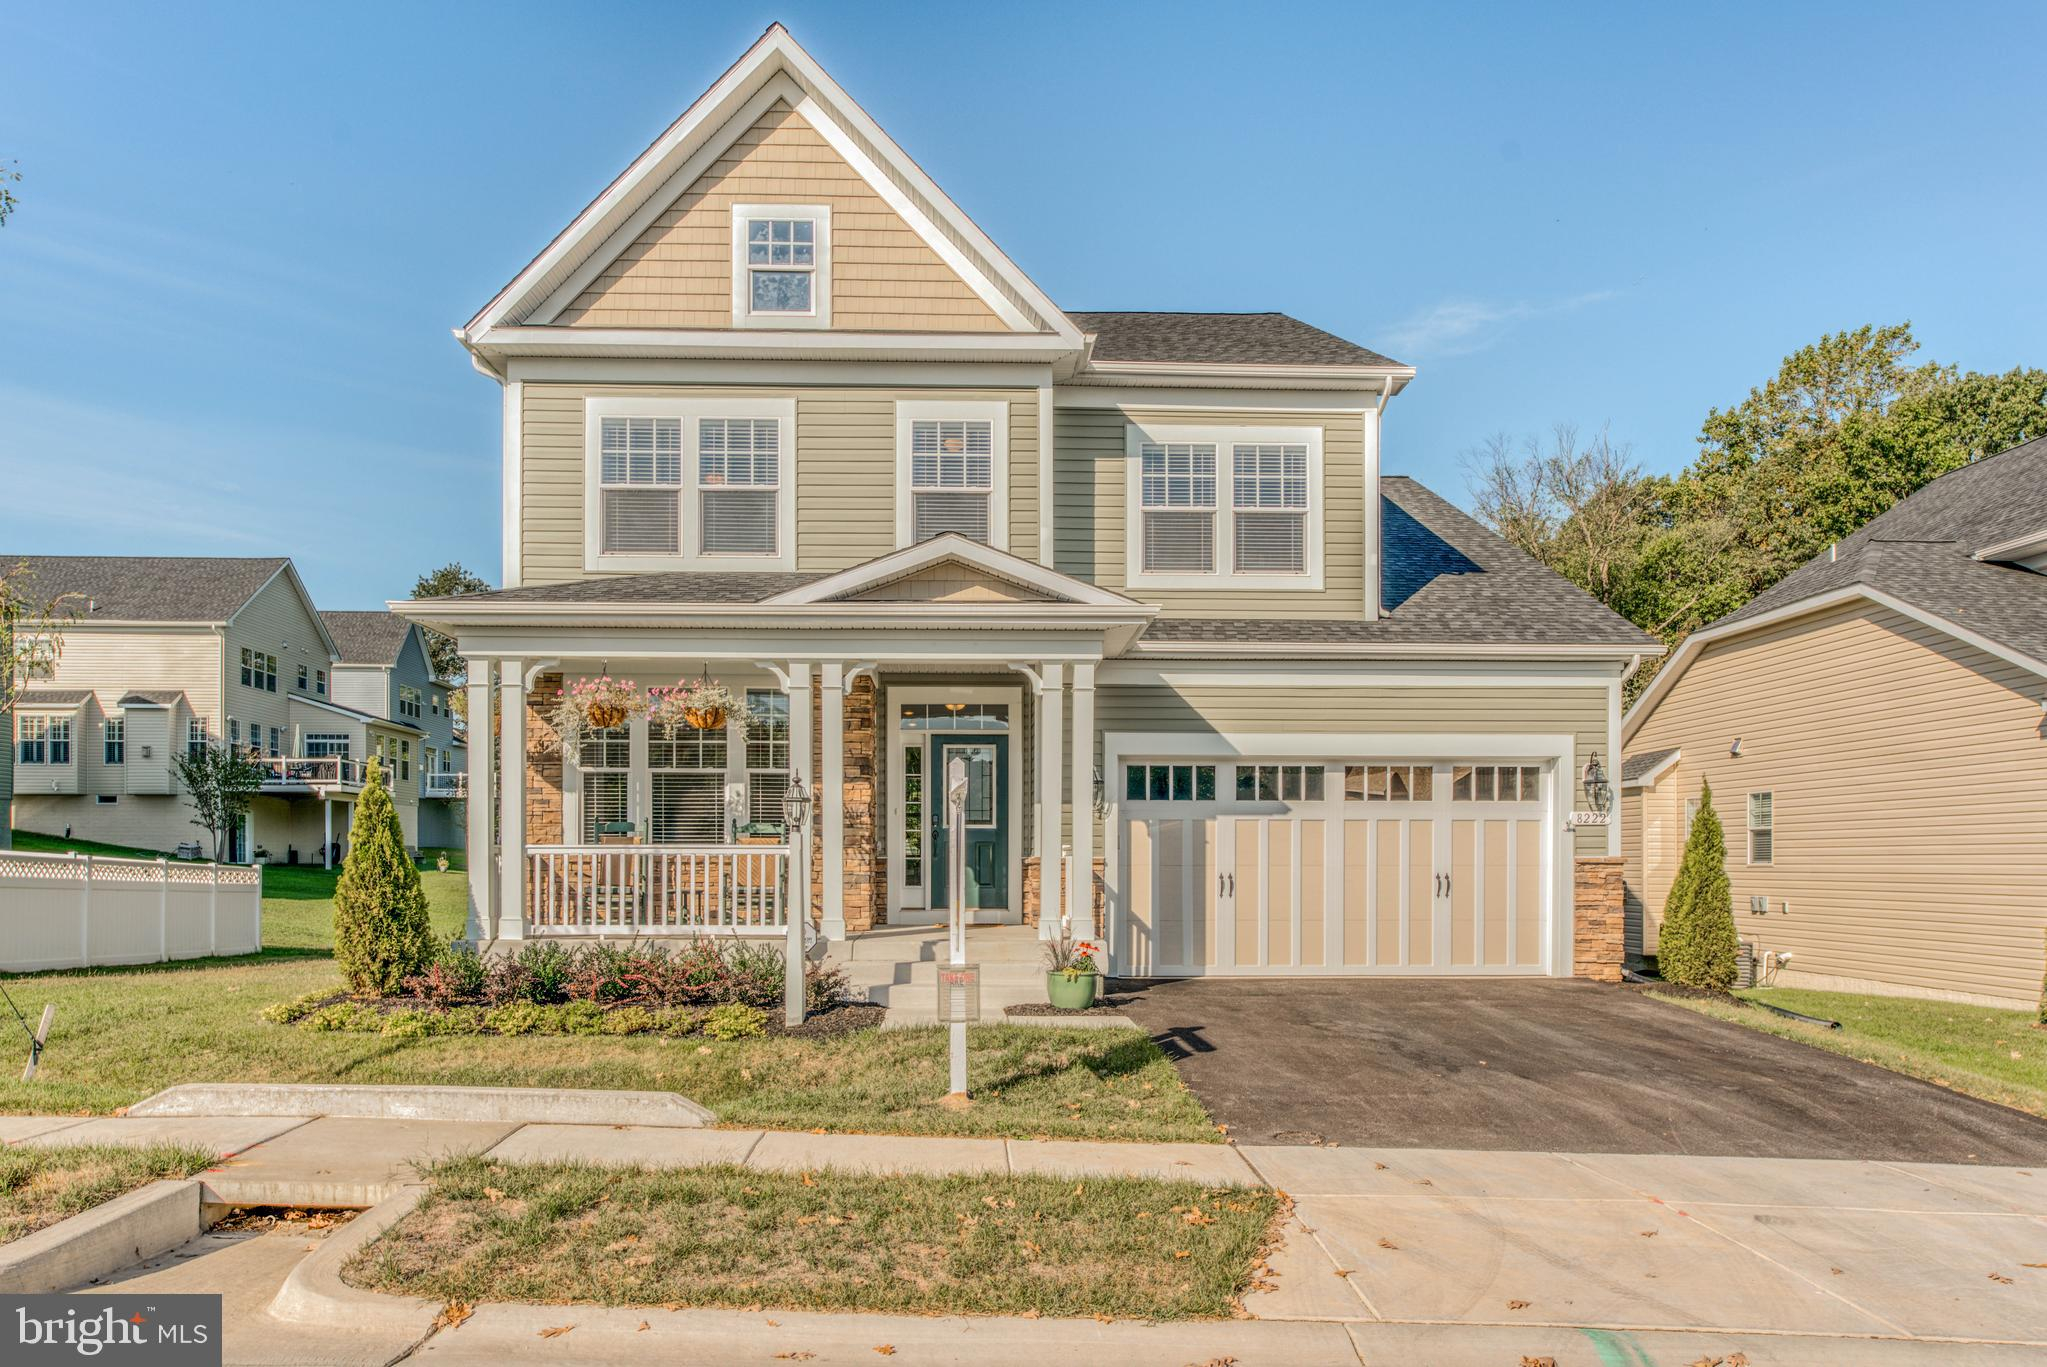 8222 POWERS DRIVE, MILLERSVILLE, MD 21108